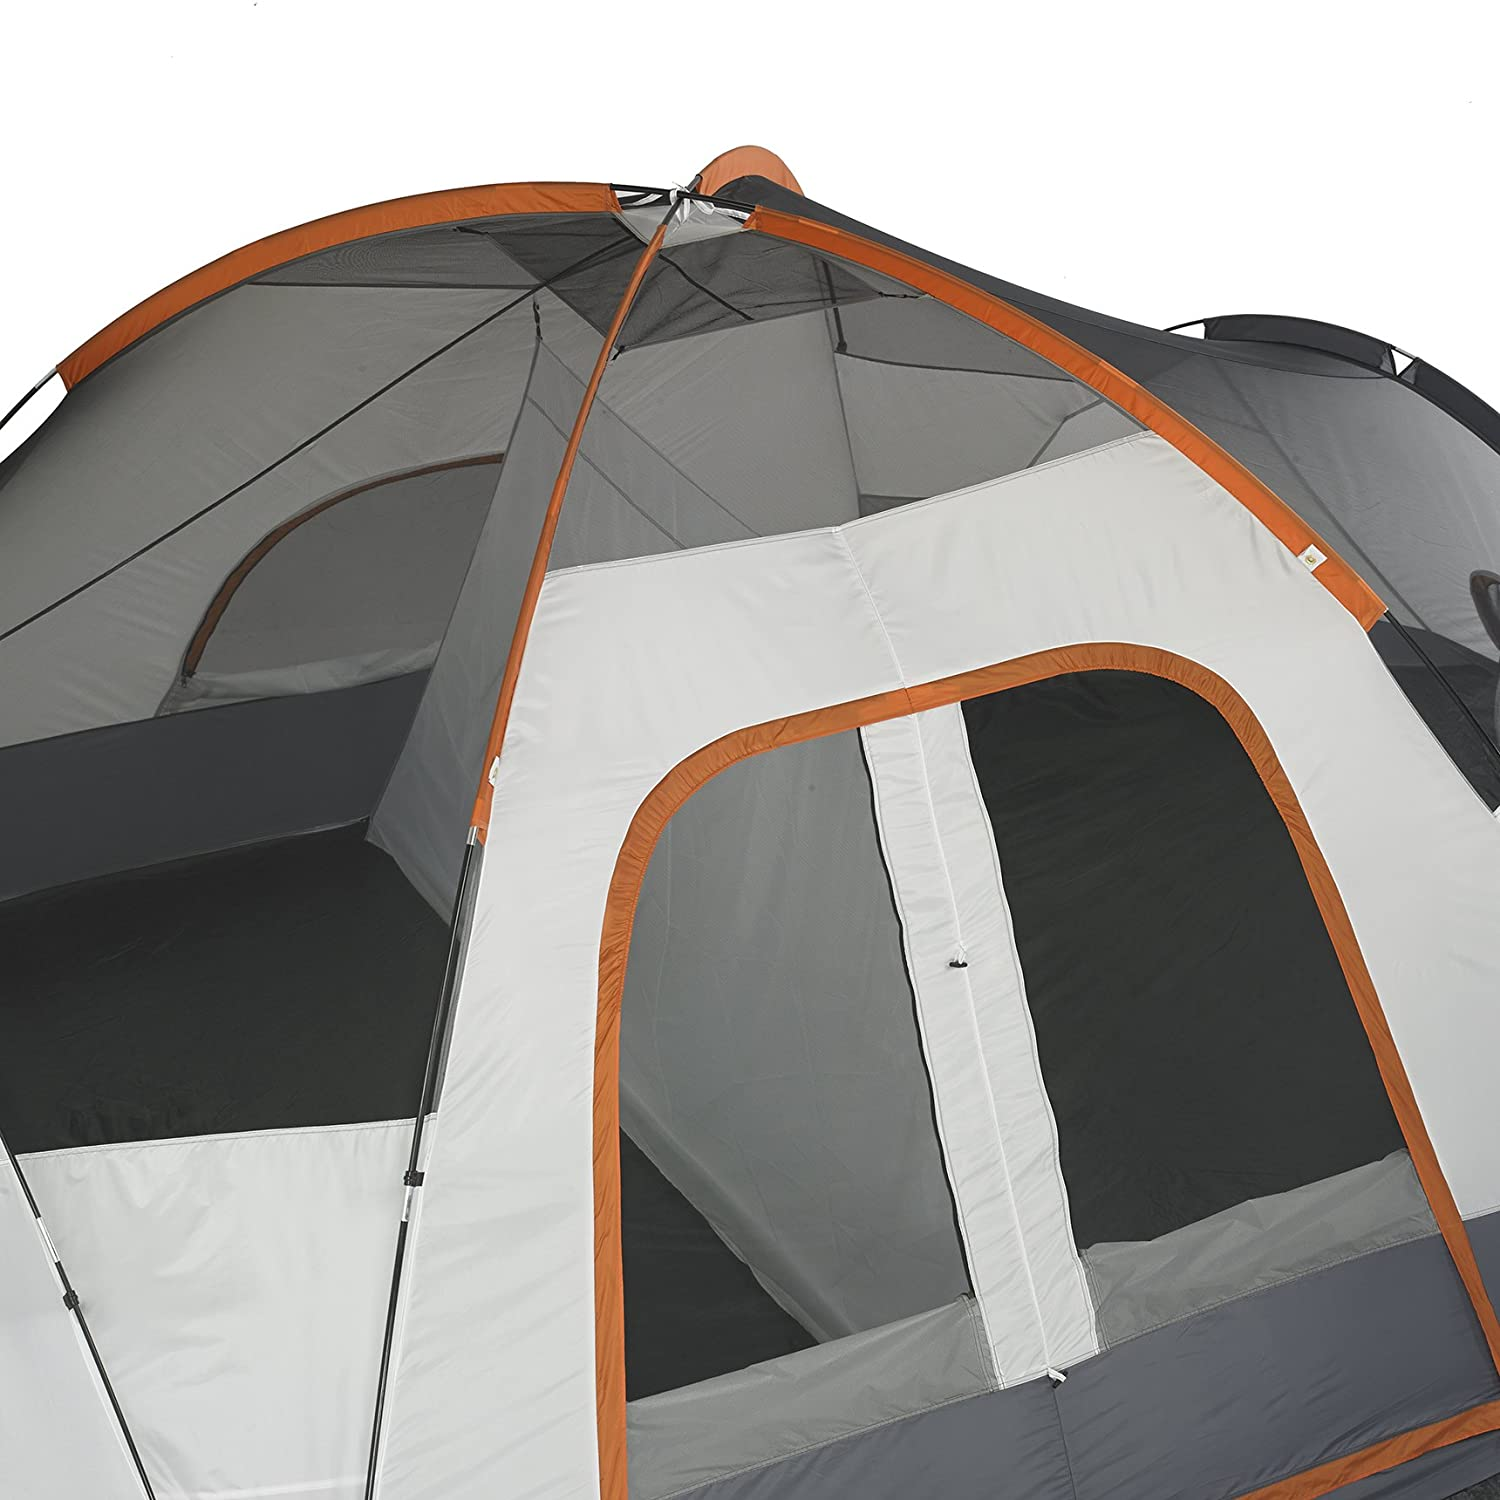 Amazon.com  Mountain Trails Grand Pass Tent - 10 Person  Sports u0026 Outdoors  sc 1 st  Amazon.com & Amazon.com : Mountain Trails Grand Pass Tent - 10 Person : Sports ...